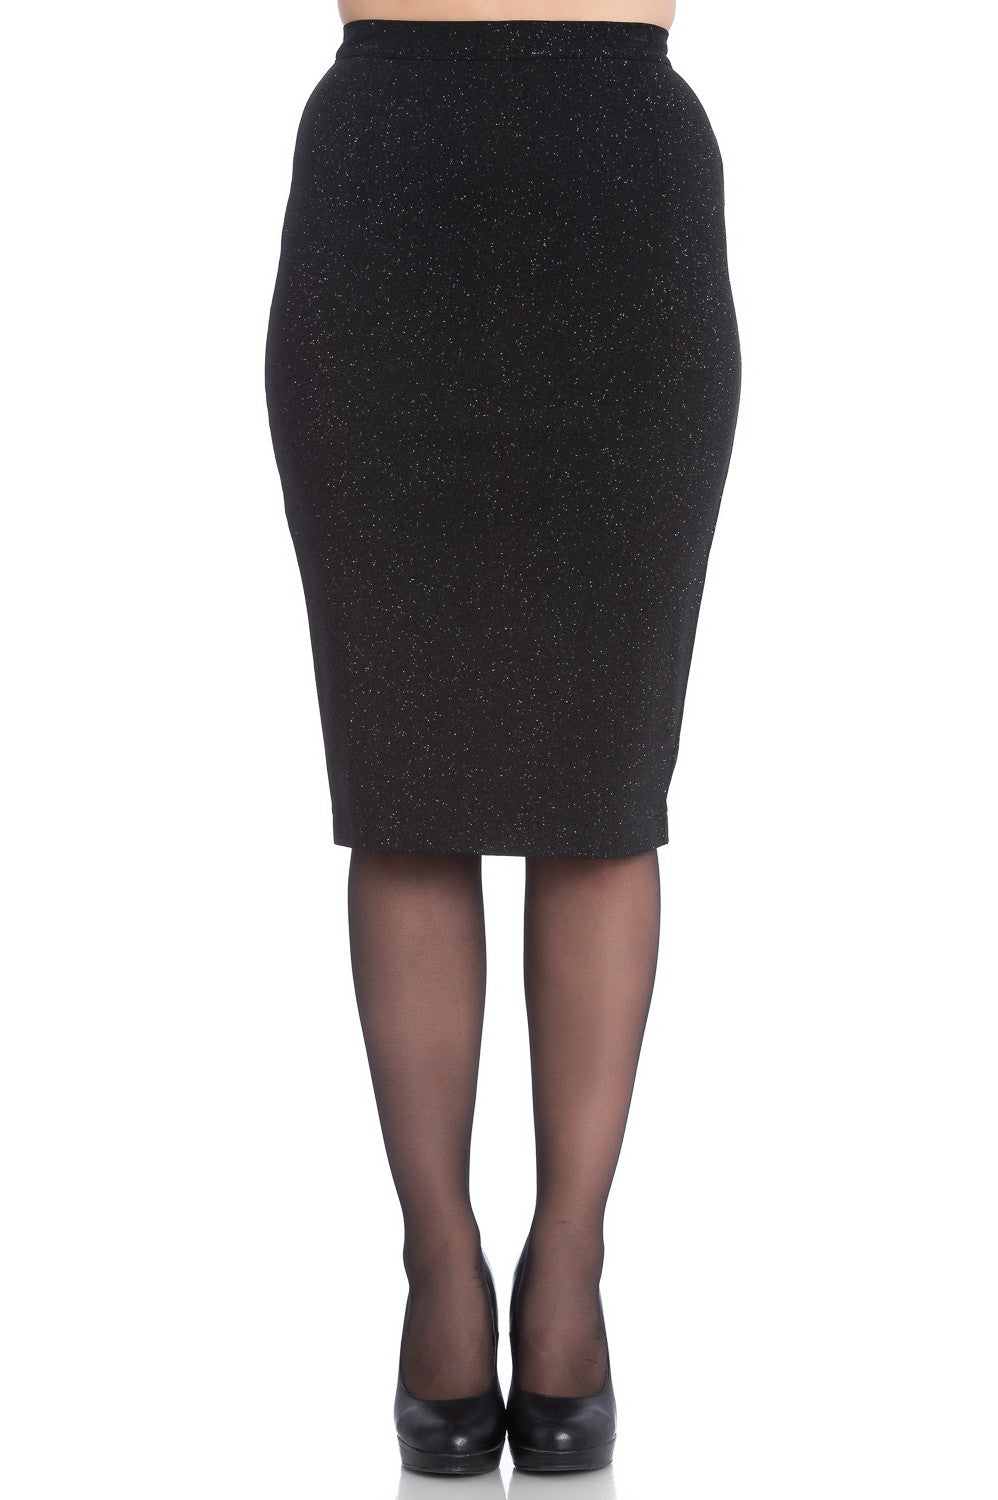 Nebula Black Pencil Skirt ~ Hell Bunny